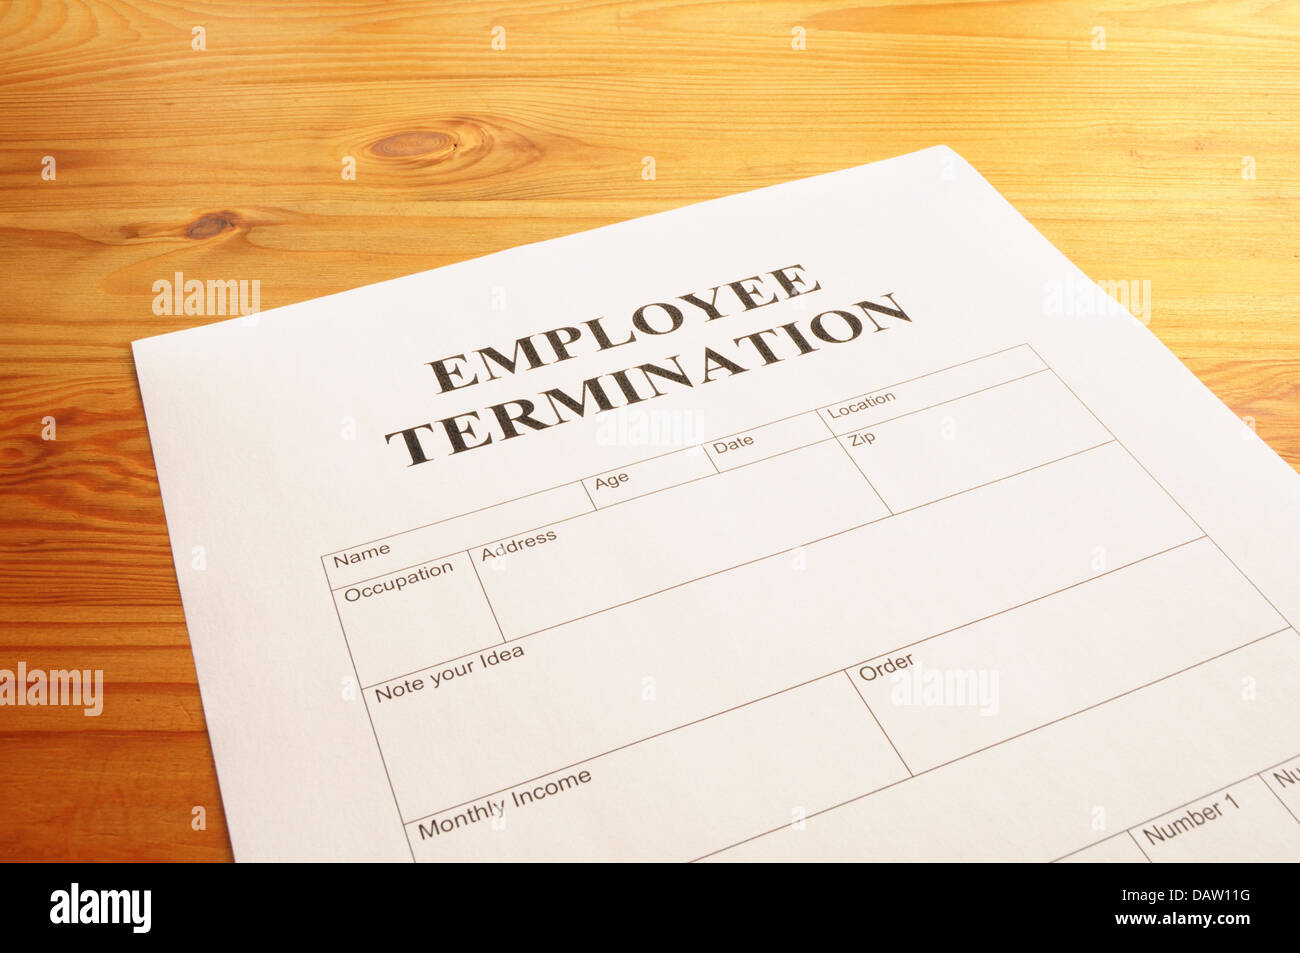 employee termination - Stock Image